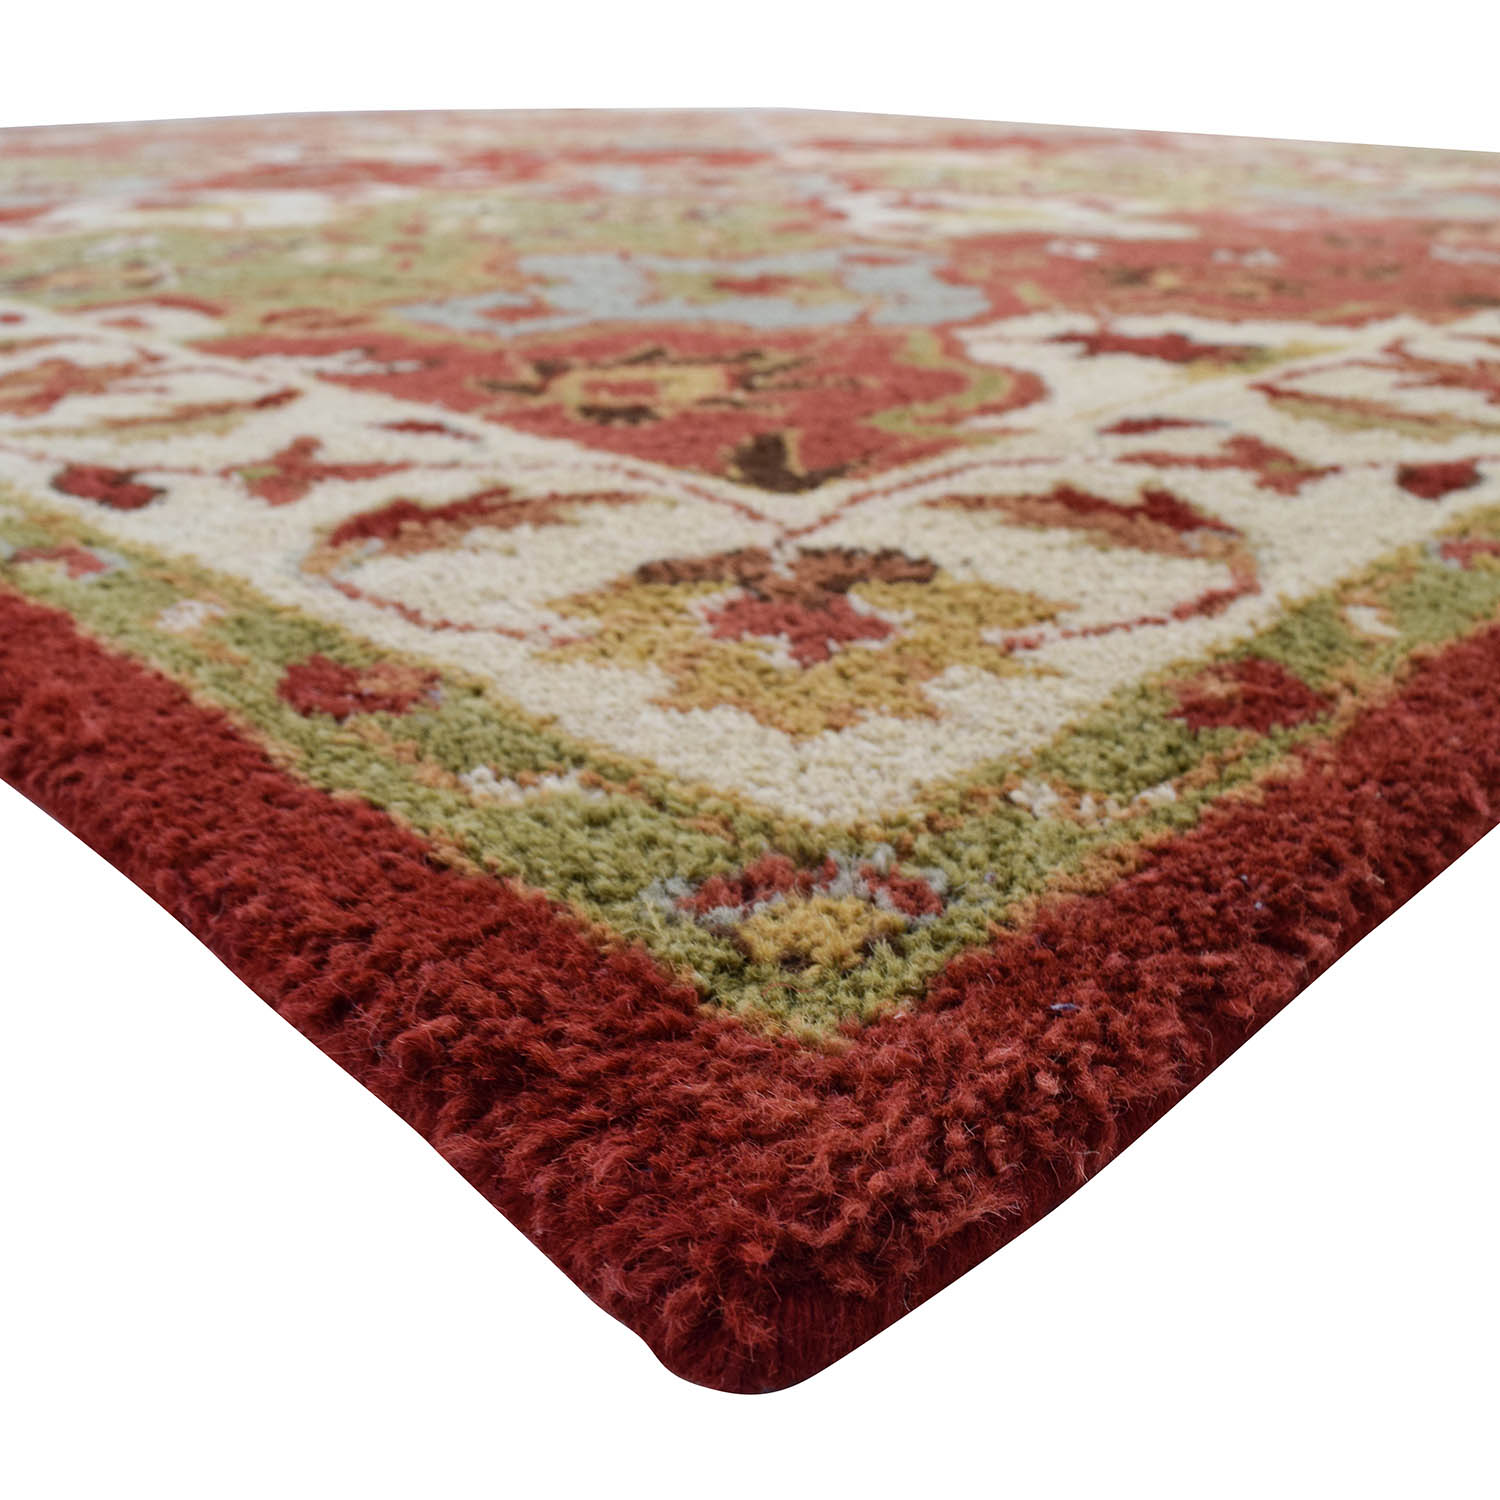 83 Off Pottery Barn Pottery Barn Persian Patterned Rug